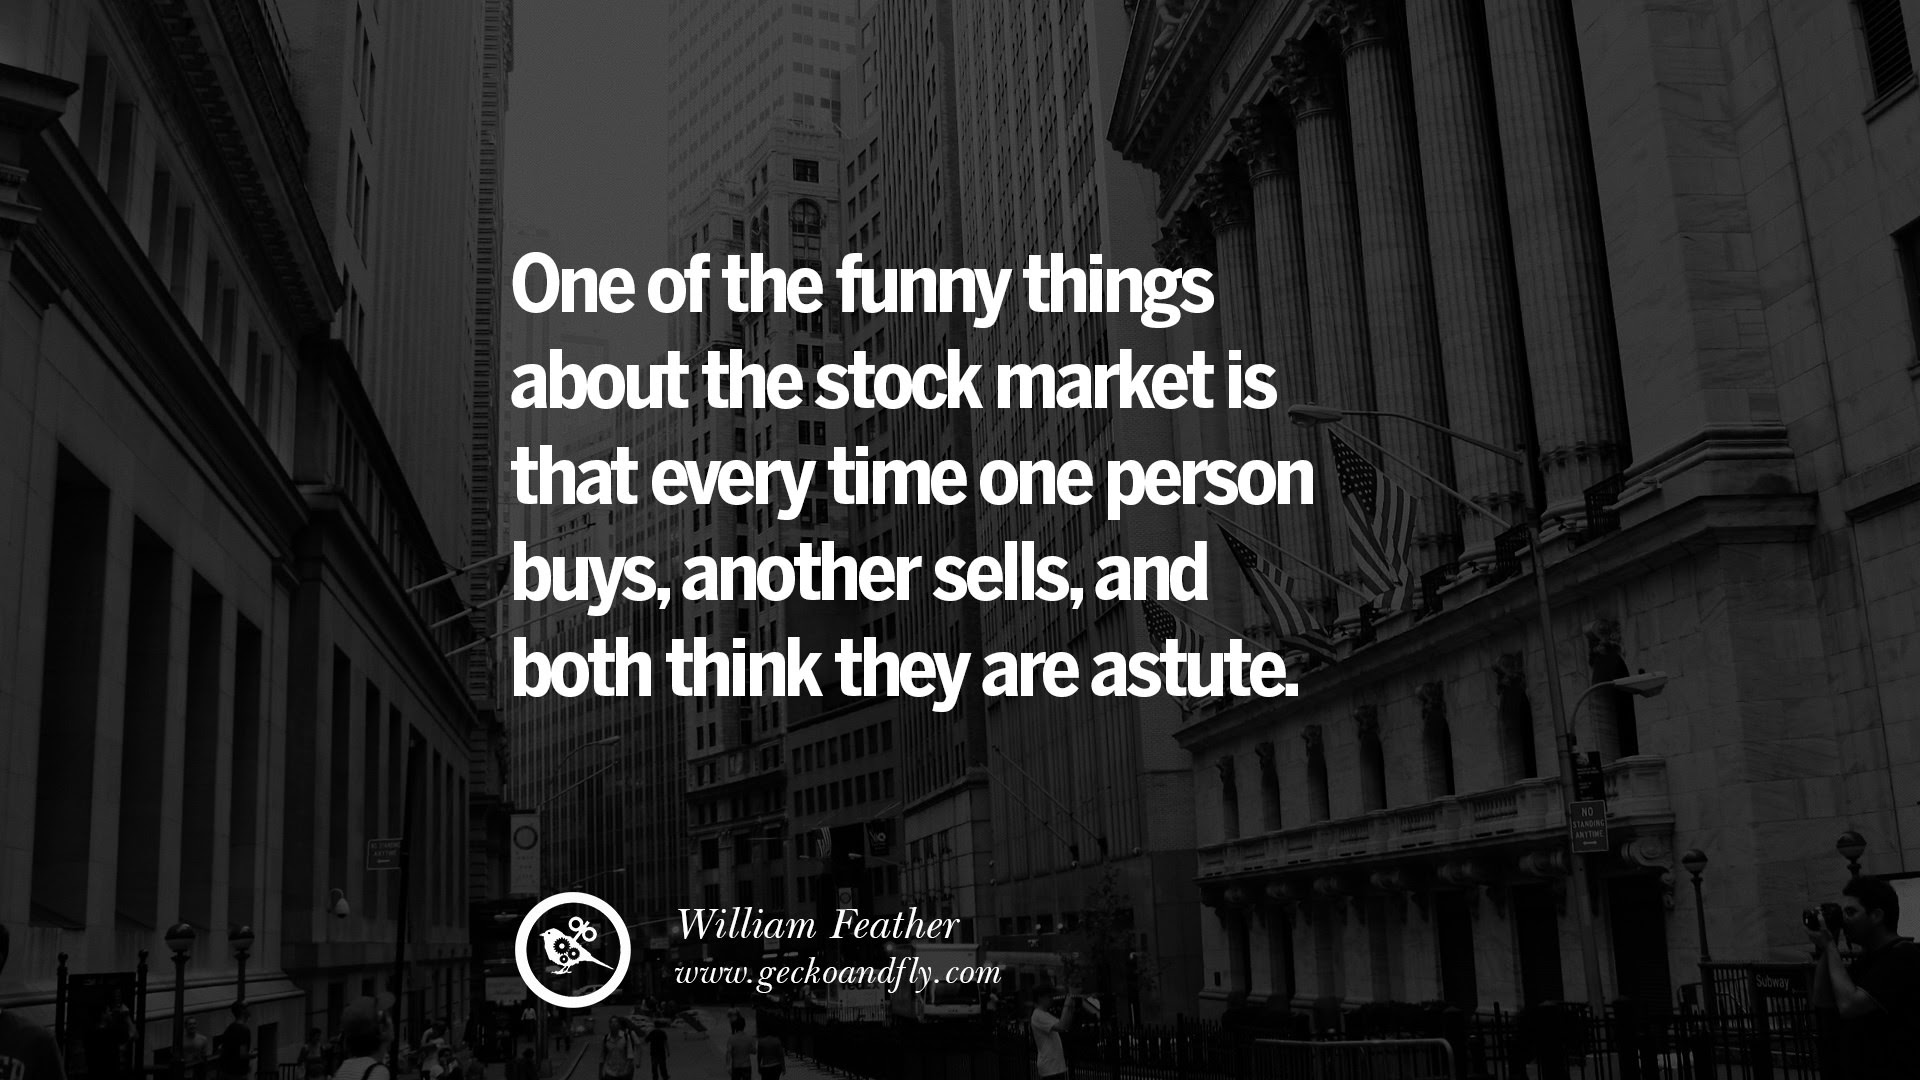 20 Inspiring Stock Market Investment Quotes by Successful